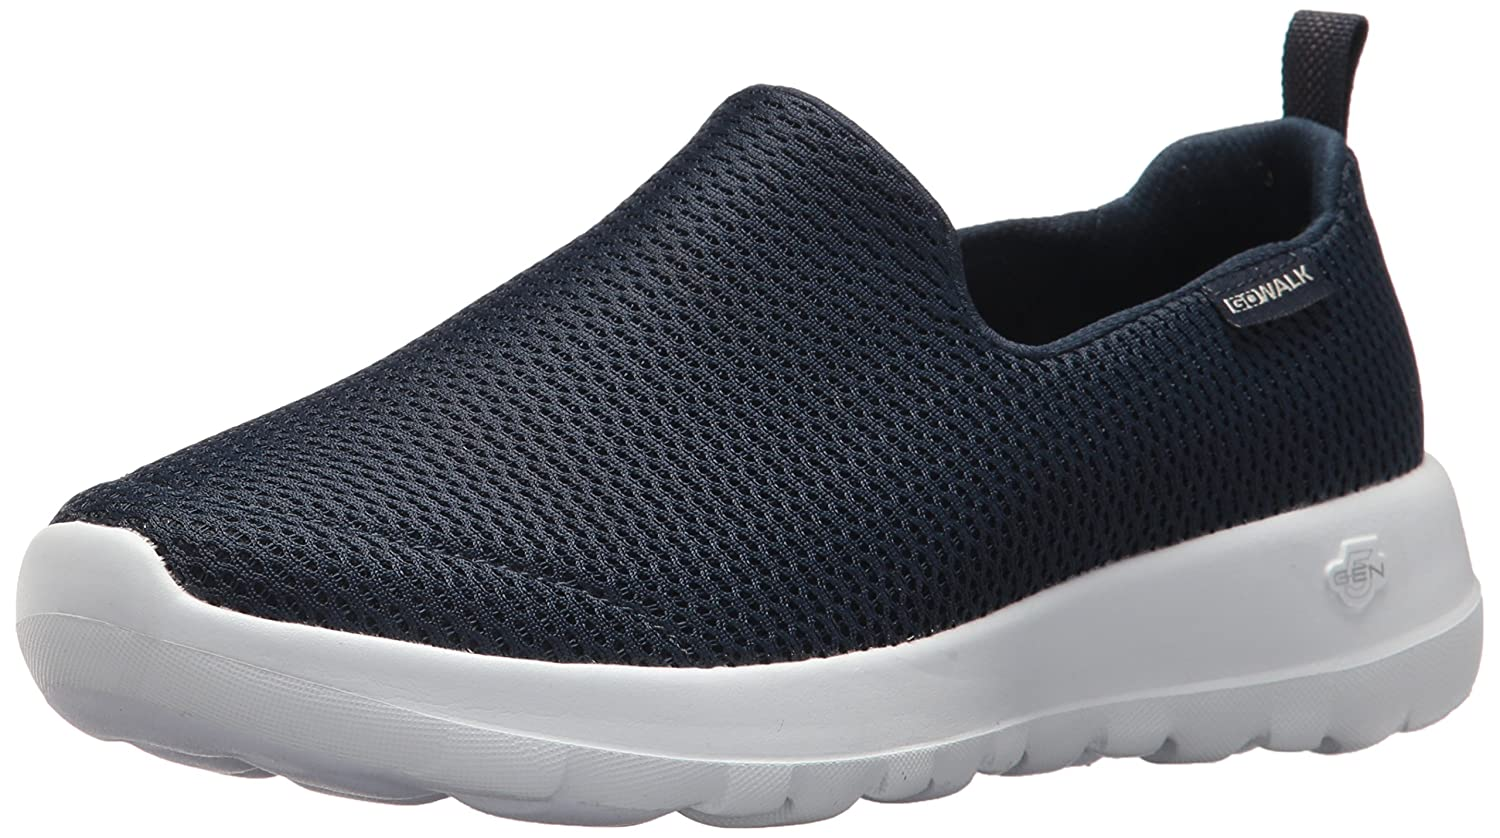 Skechers Women's Go Joy Walking Shoe B071JX2VGJ 8.5 W US|Navy/White